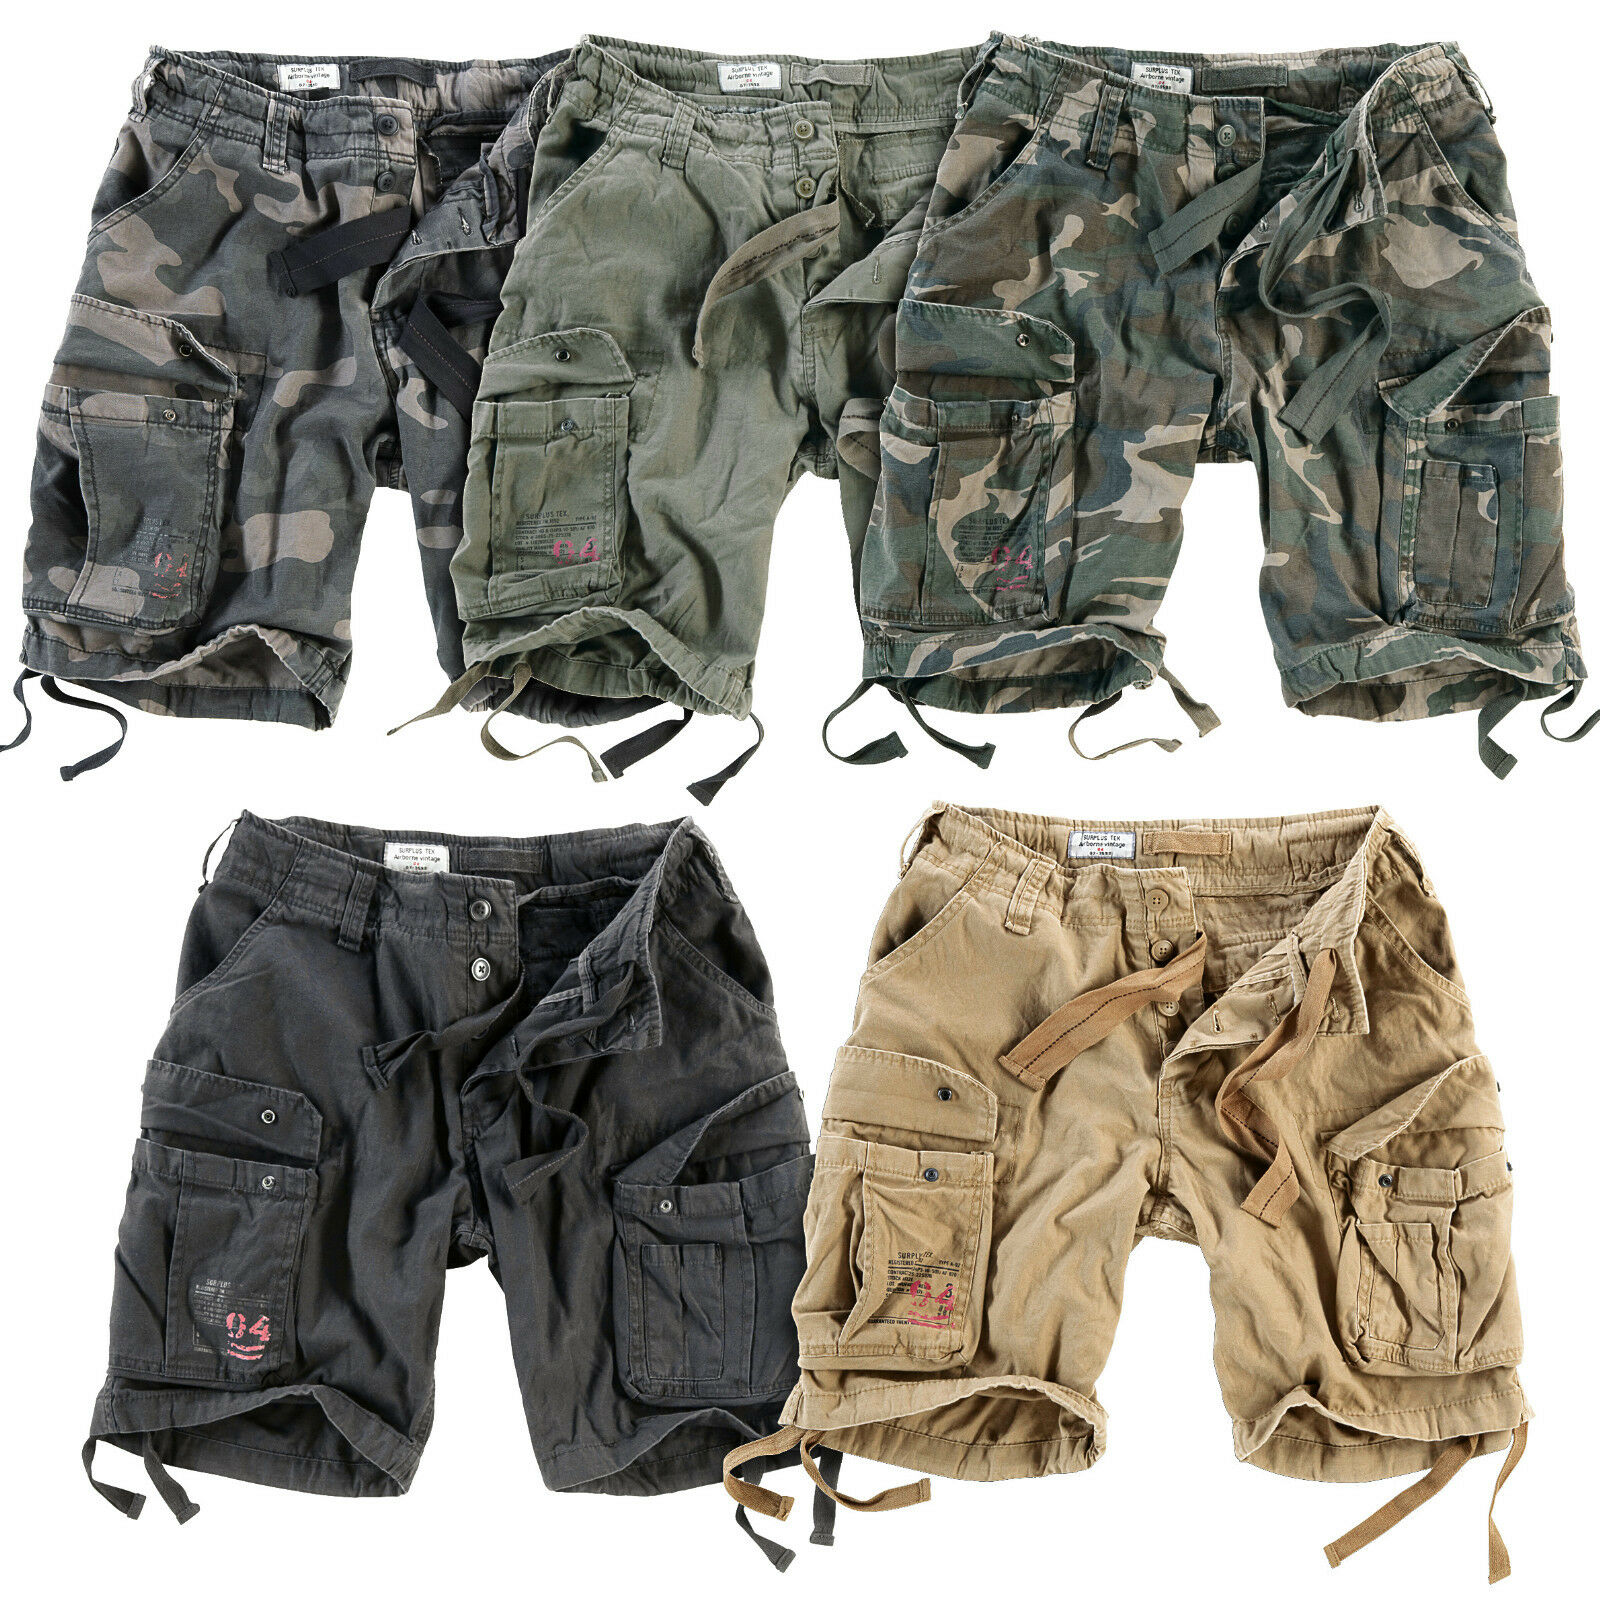 SURPLUS AIRBORNE CARGO SHORTS MENS  ARMY VINTAGE COMBAT WORK WEAR KNEE LENGTH  considerate service